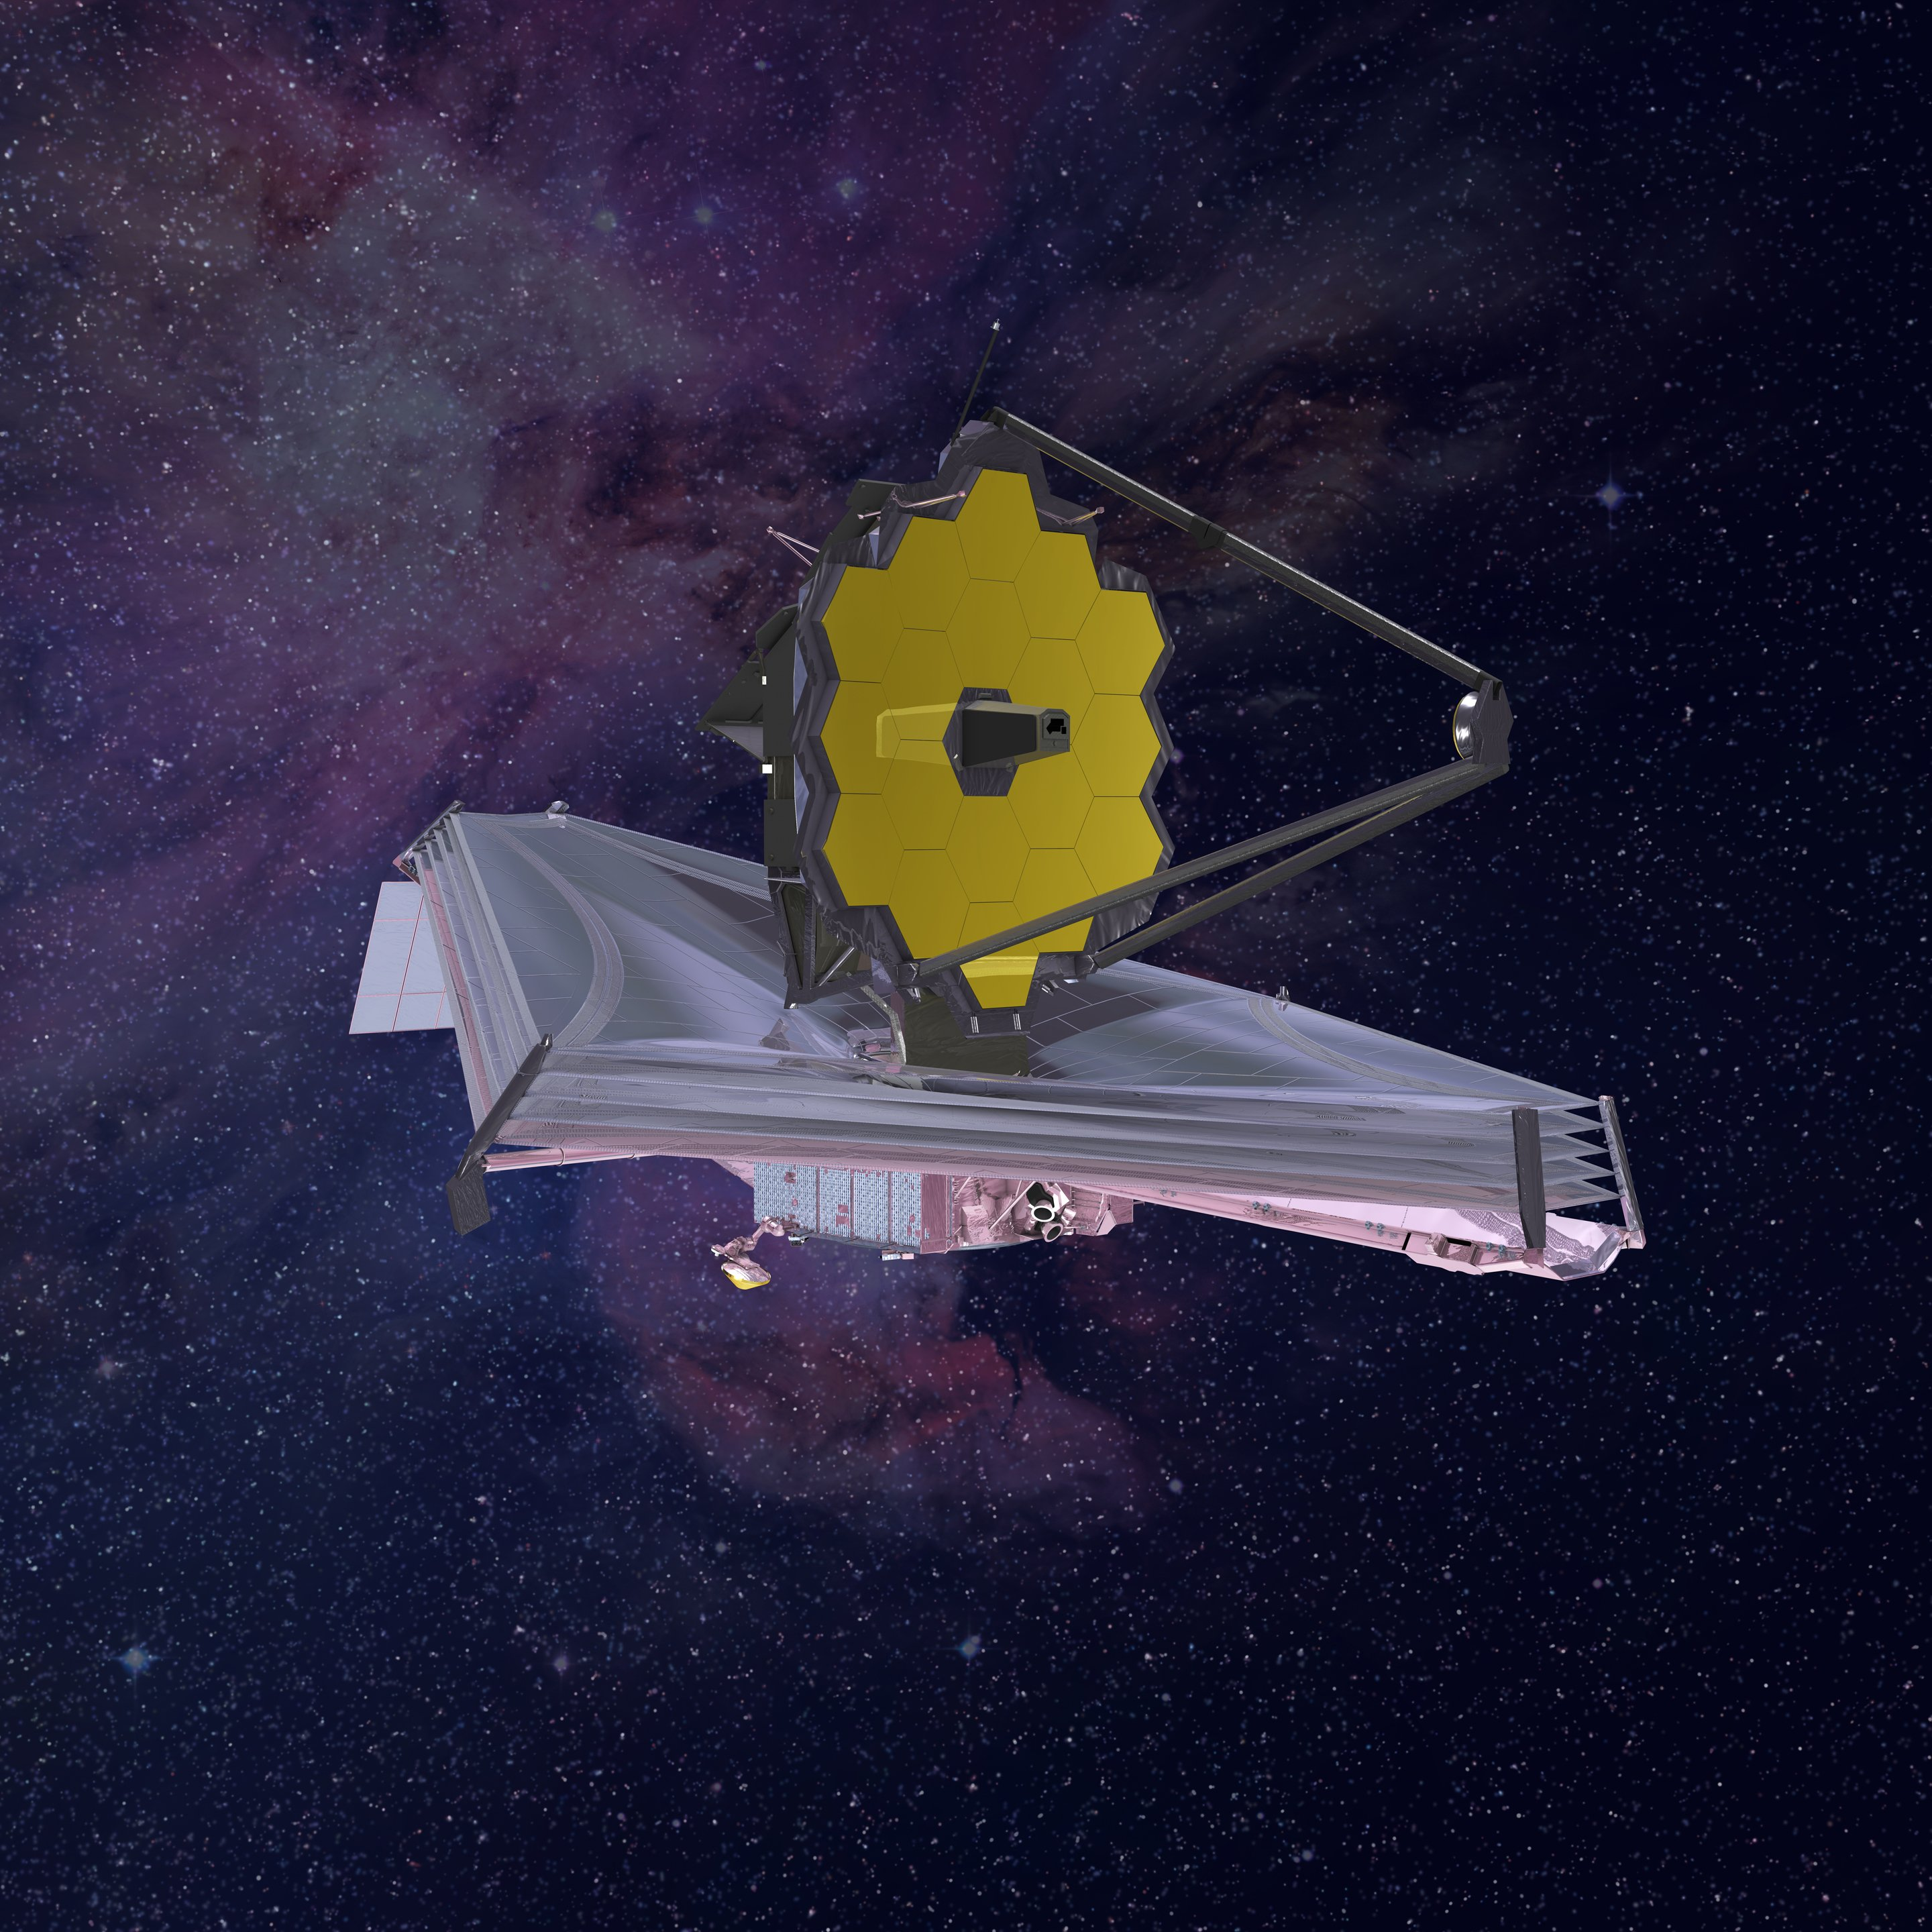 "A artistic concept of the new Webb telescope that could see the formation of the first galaxies. Image : <a href=""https://www.flickr.com/photos/nasawebbtelescope/16678793810/in/album-72157624413830771/"">NASA -Flickr</a>"